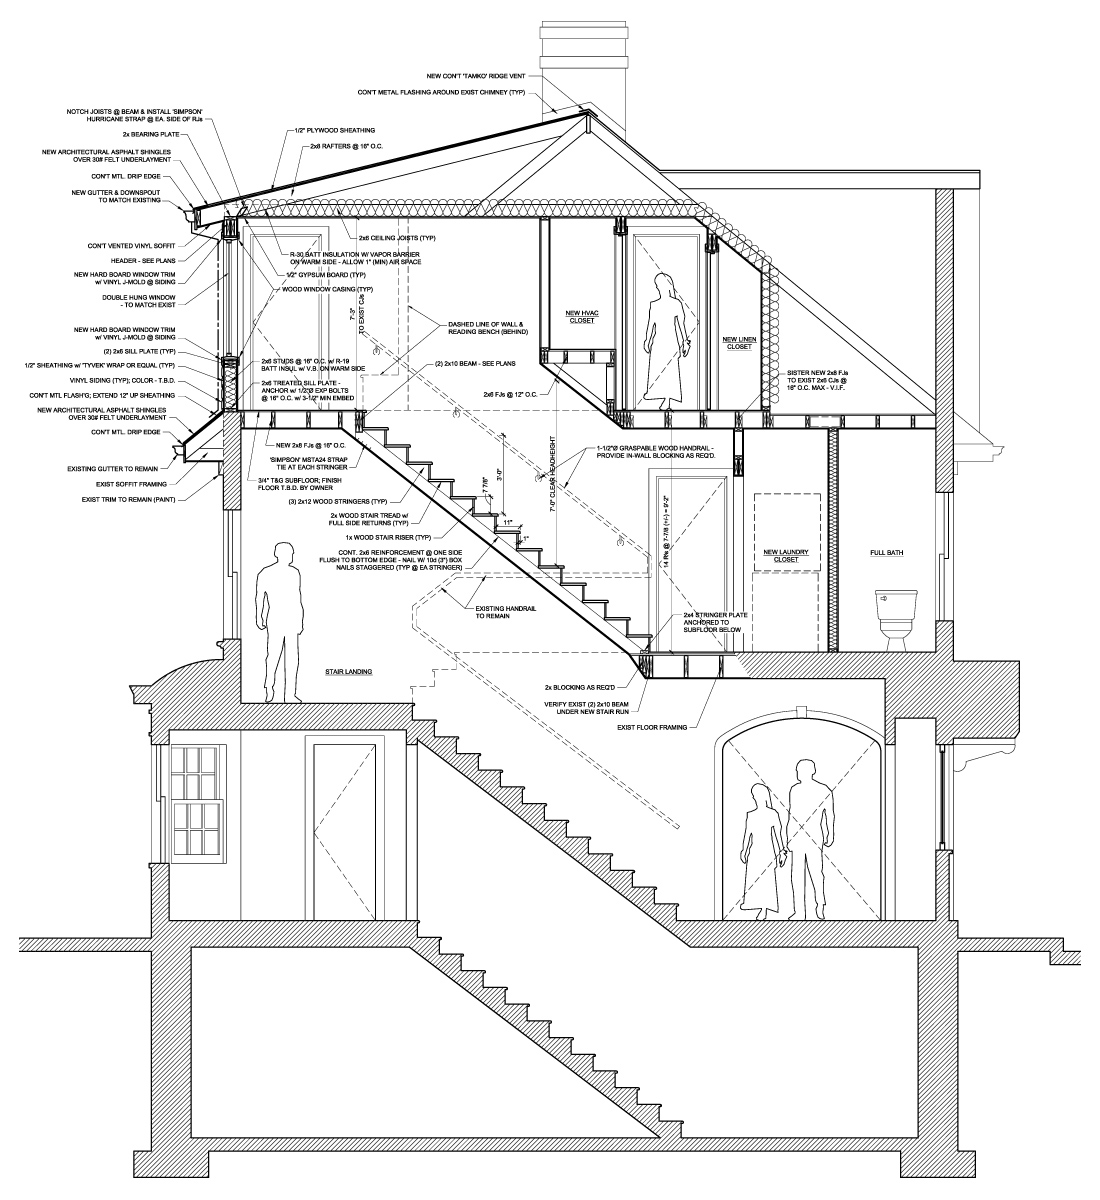 Ad arch anthony duncan architecture webster groves for Section window design